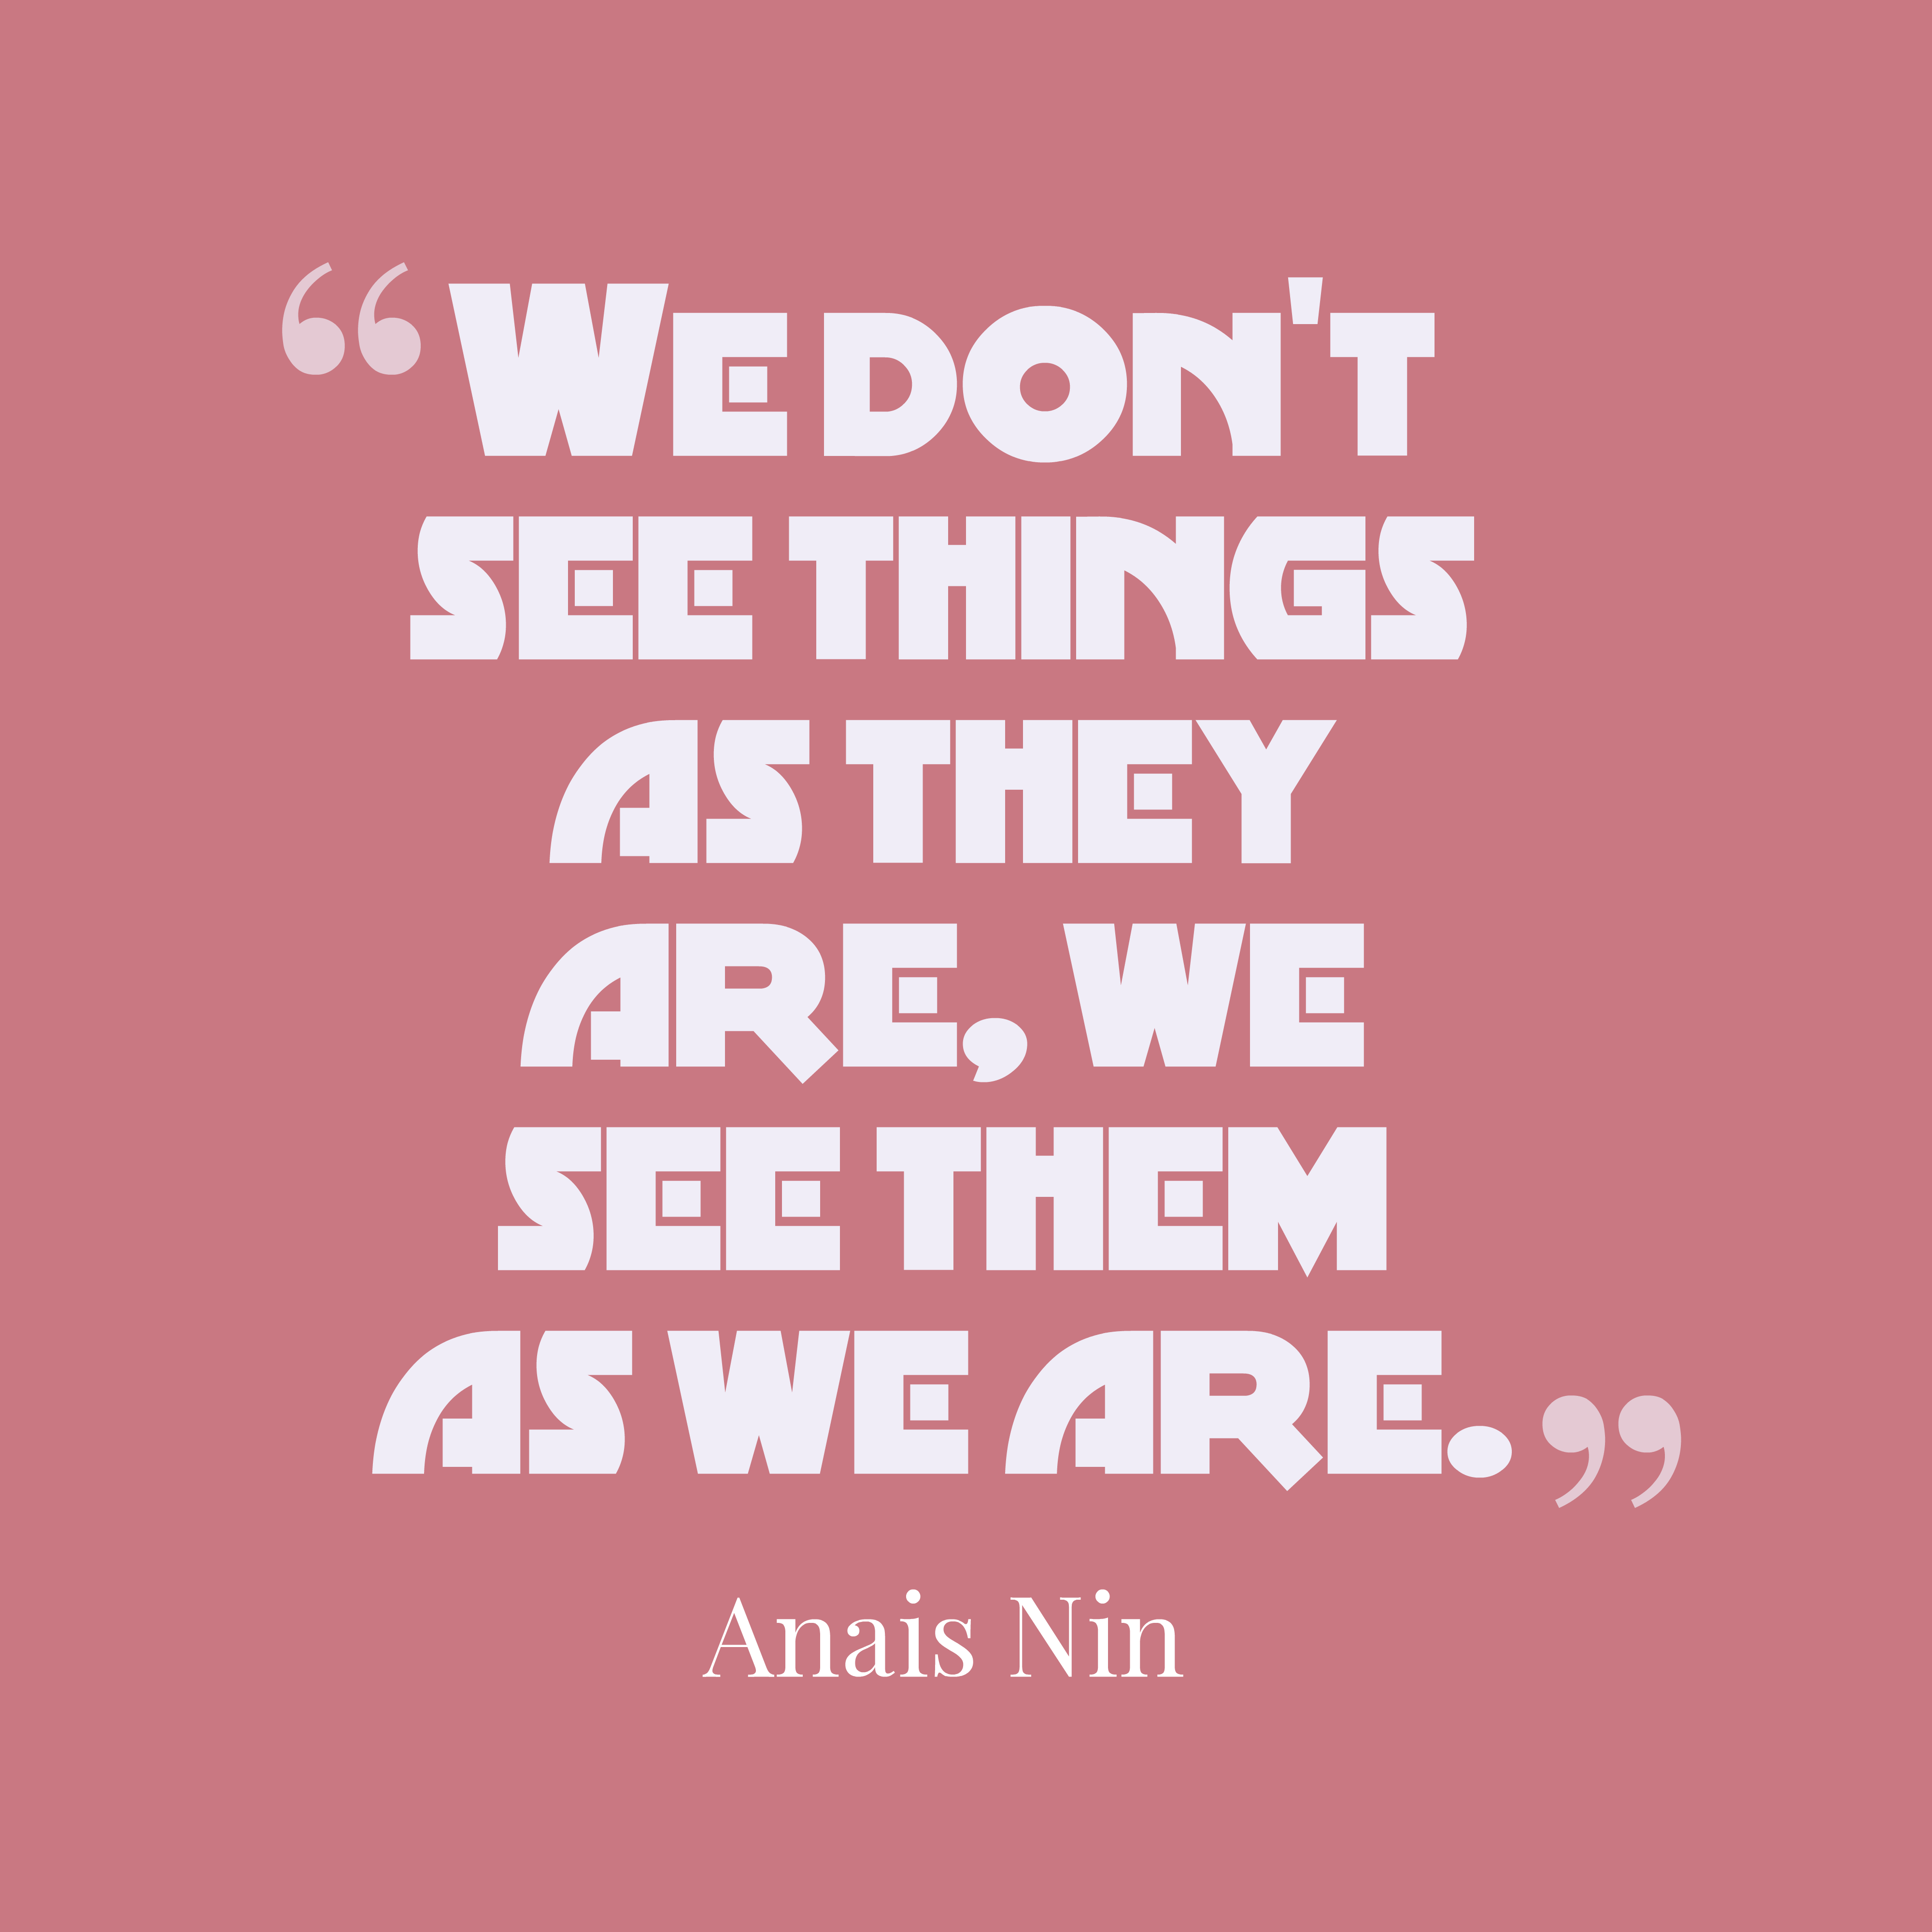 Quotes image of We don't see things as they are, we see them as we are.